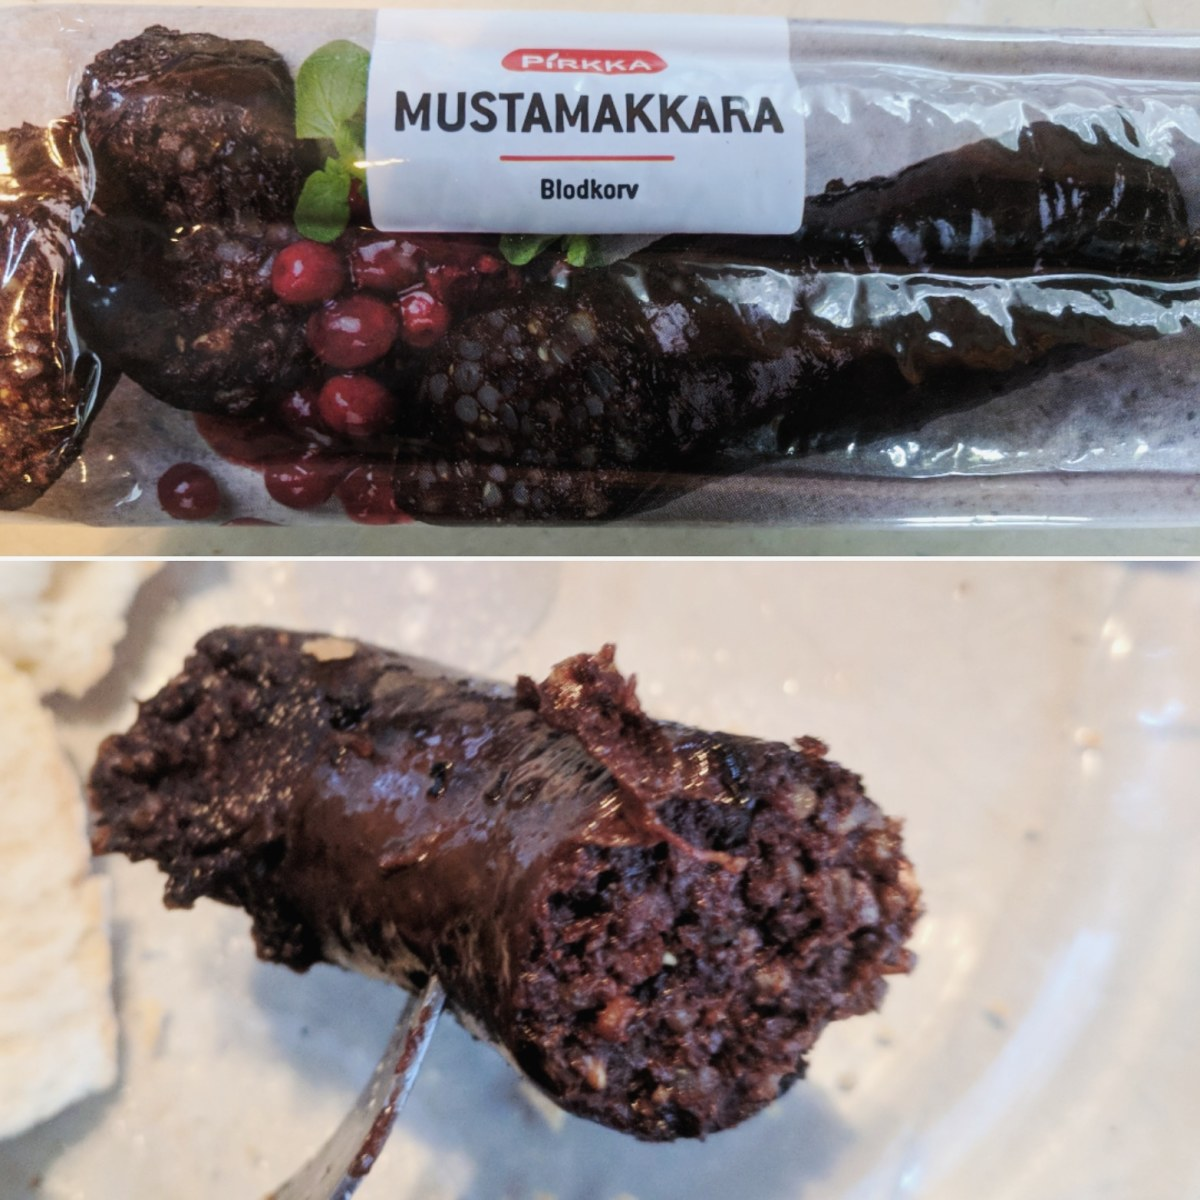 Mustamakkara in and out of the package.